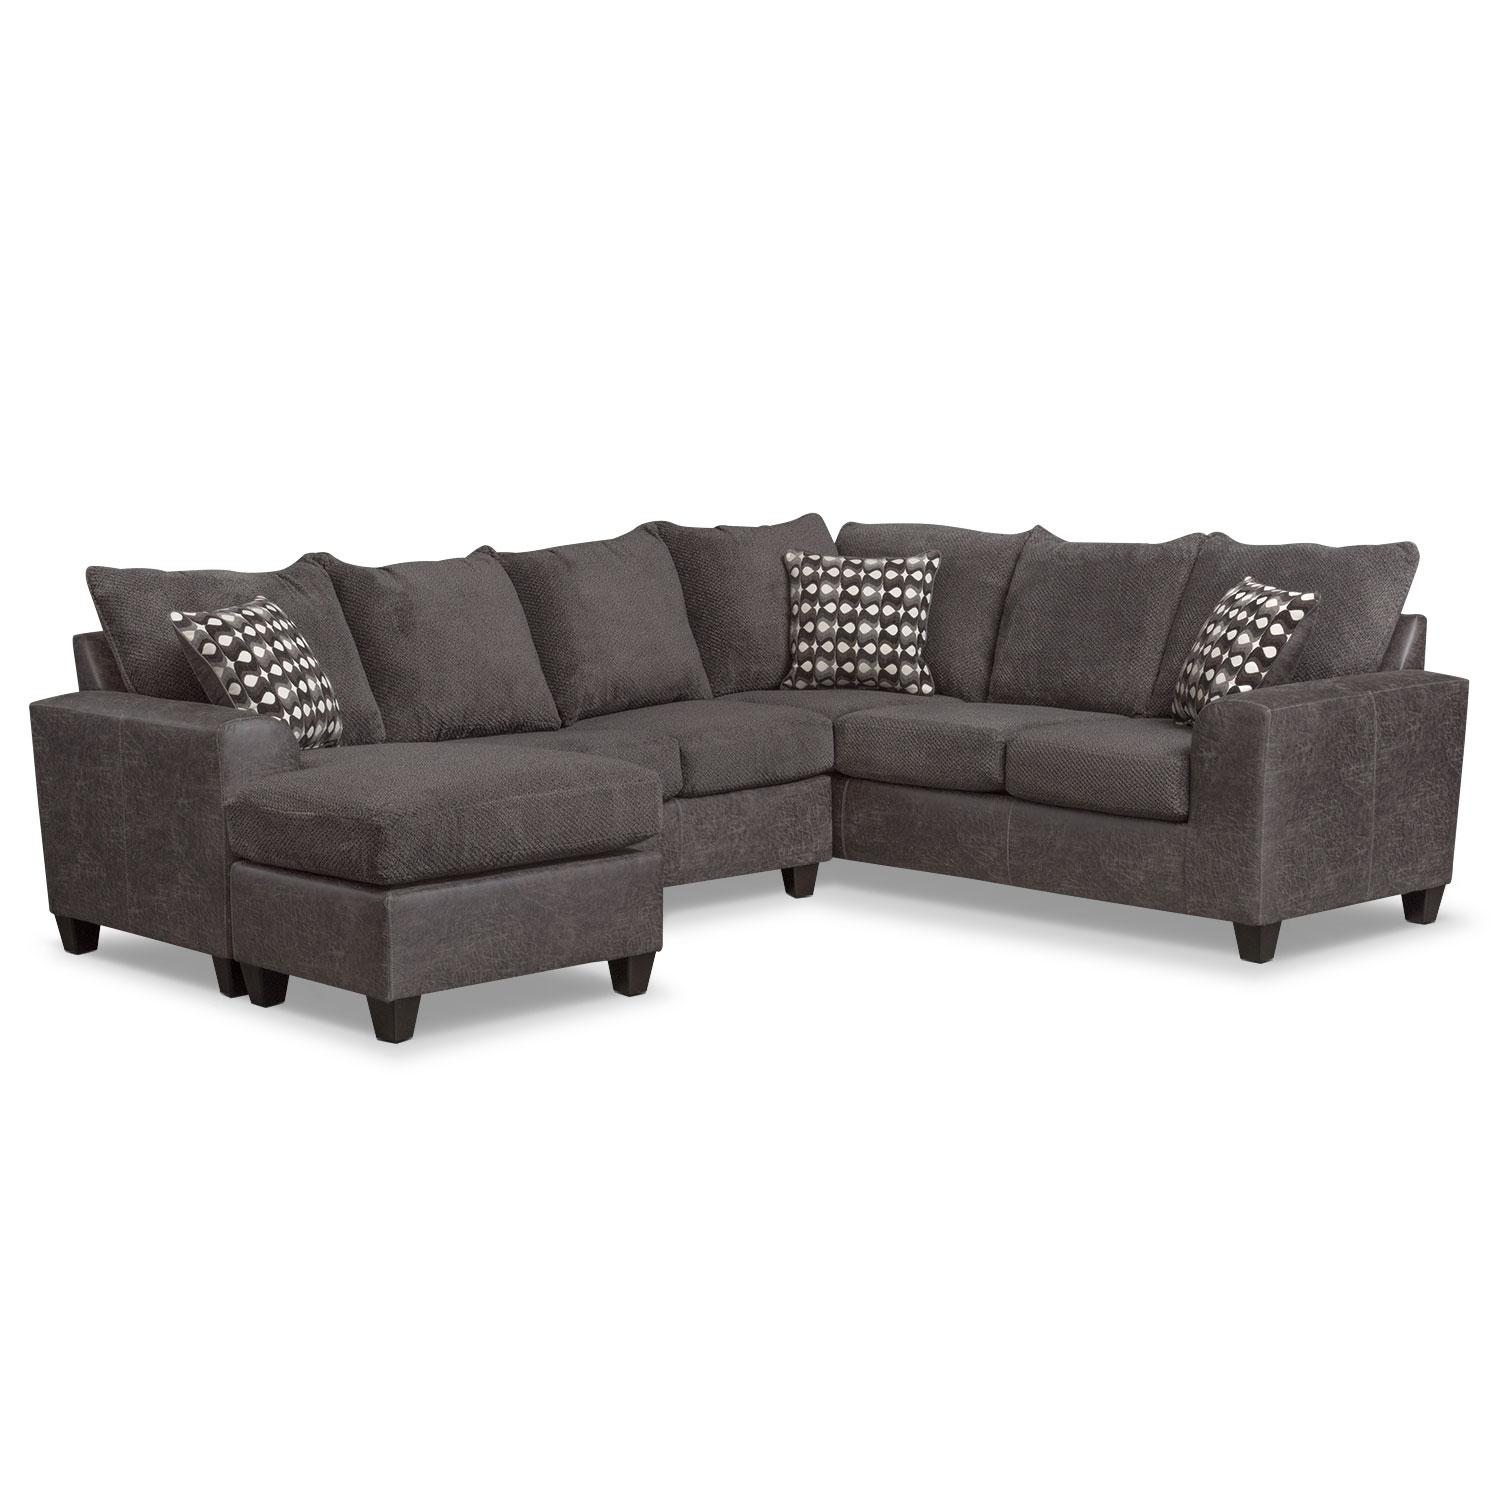 Brando 3 Piece Sectional With Modular Chaise – Smoke | American Throughout Aurora 2 Piece Sectionals (View 13 of 25)